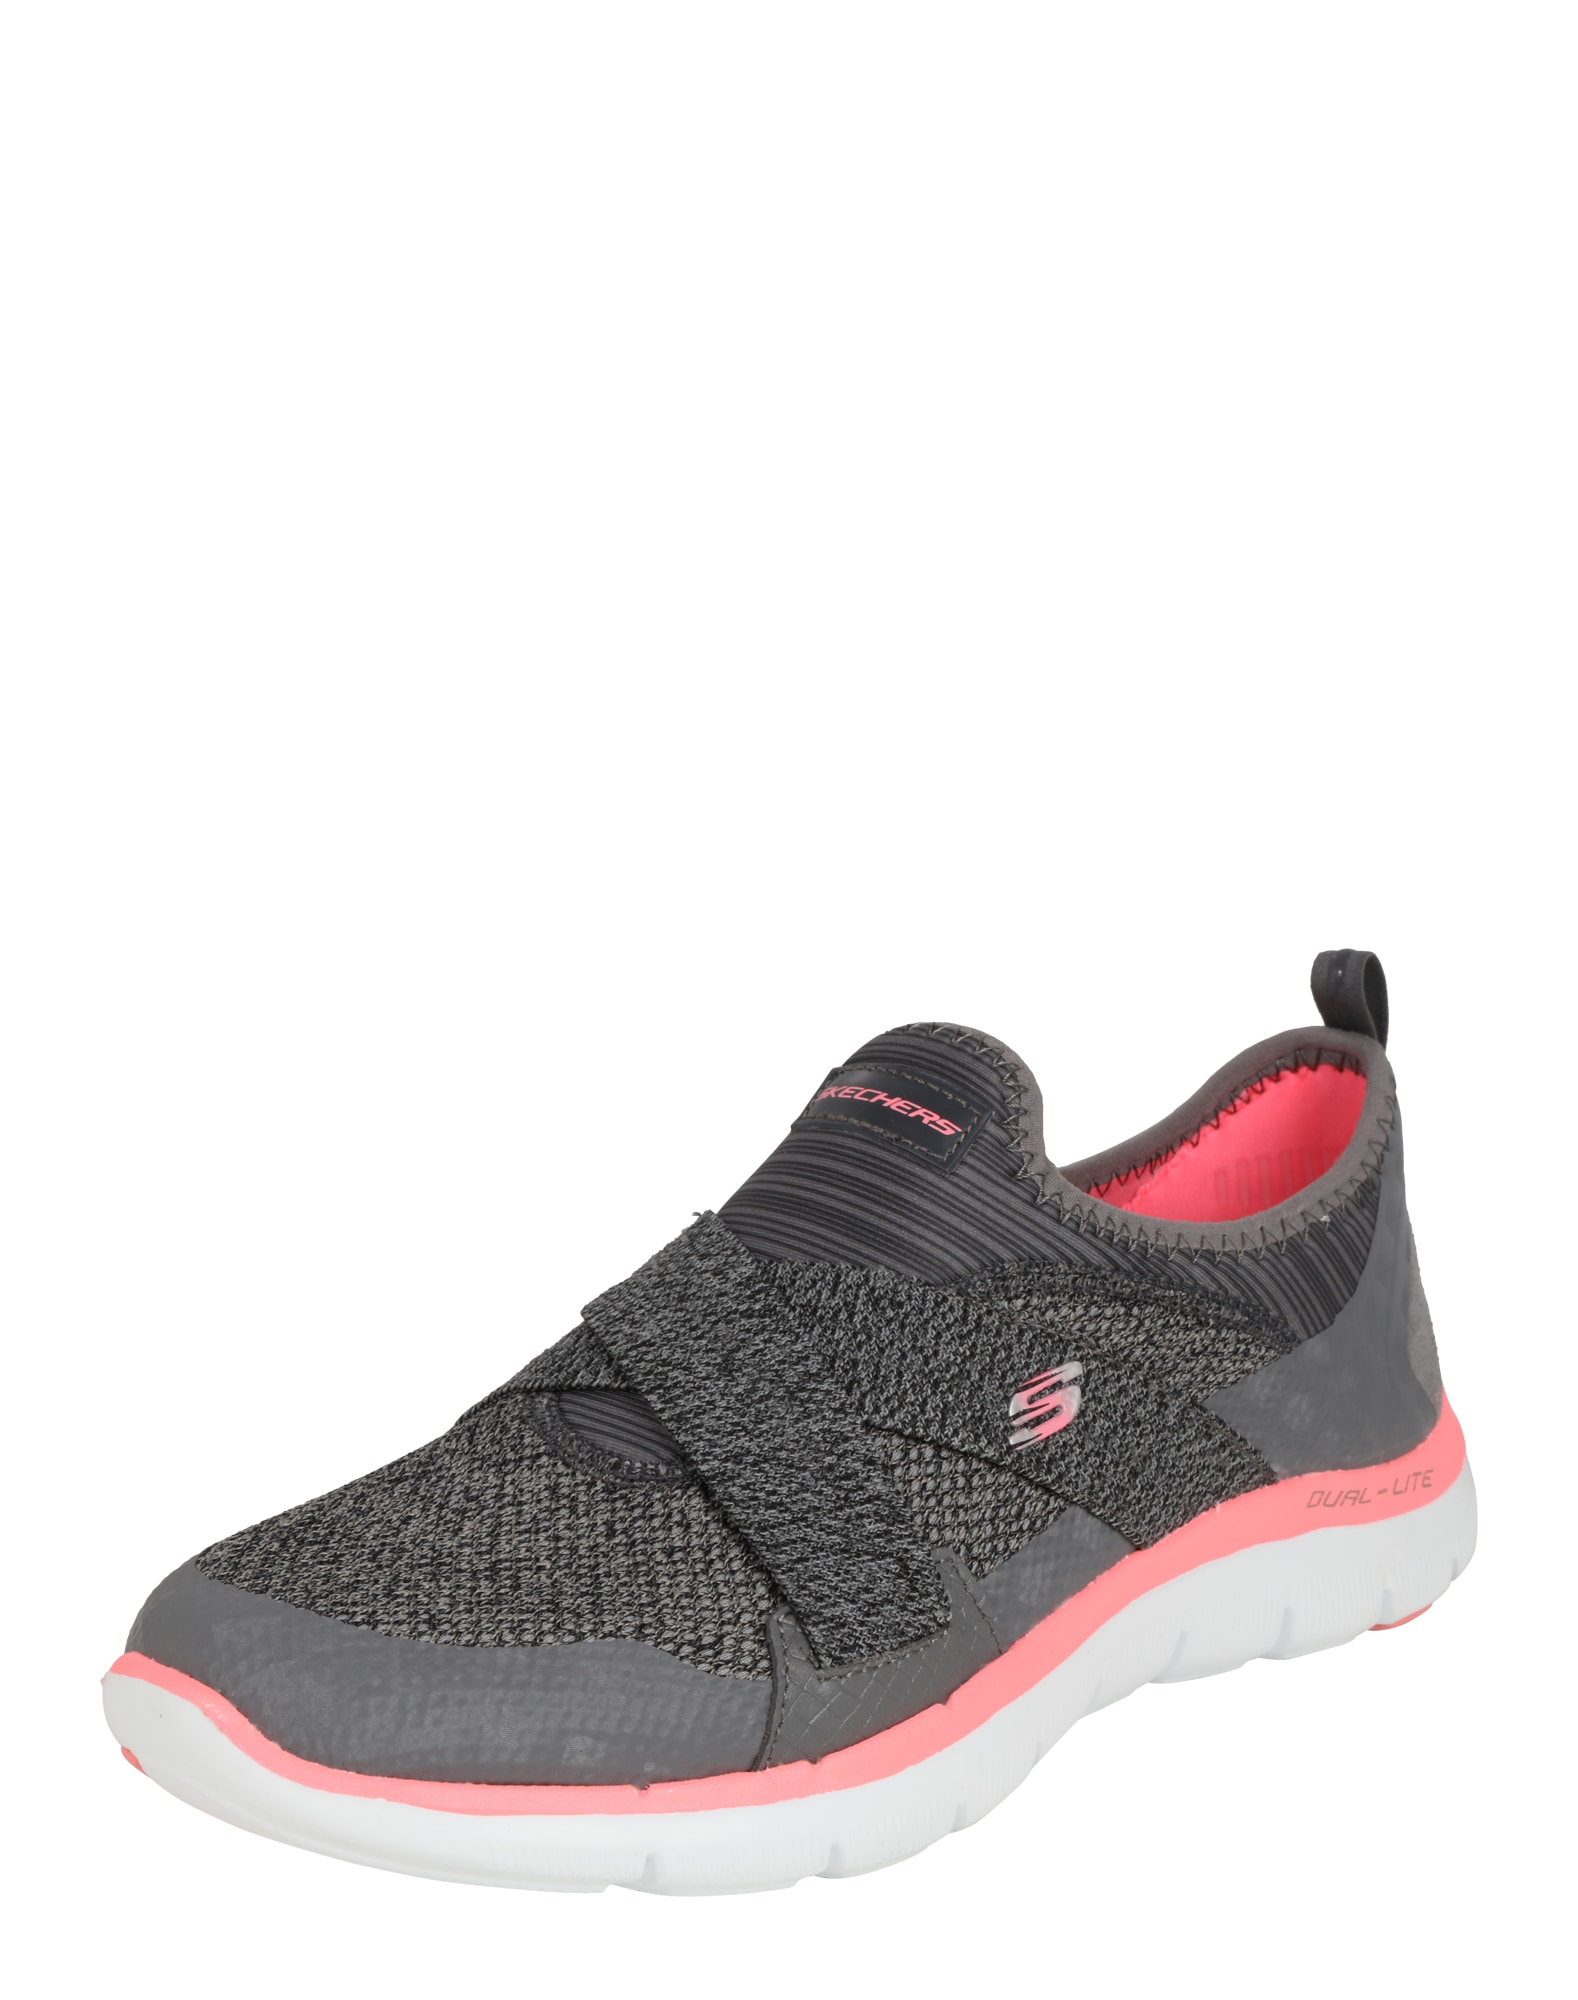 info for e5d4b 928ea AboutYou | Damen SKECHERS SKECHERS Sneaker Flex Appeal 2.0 ...